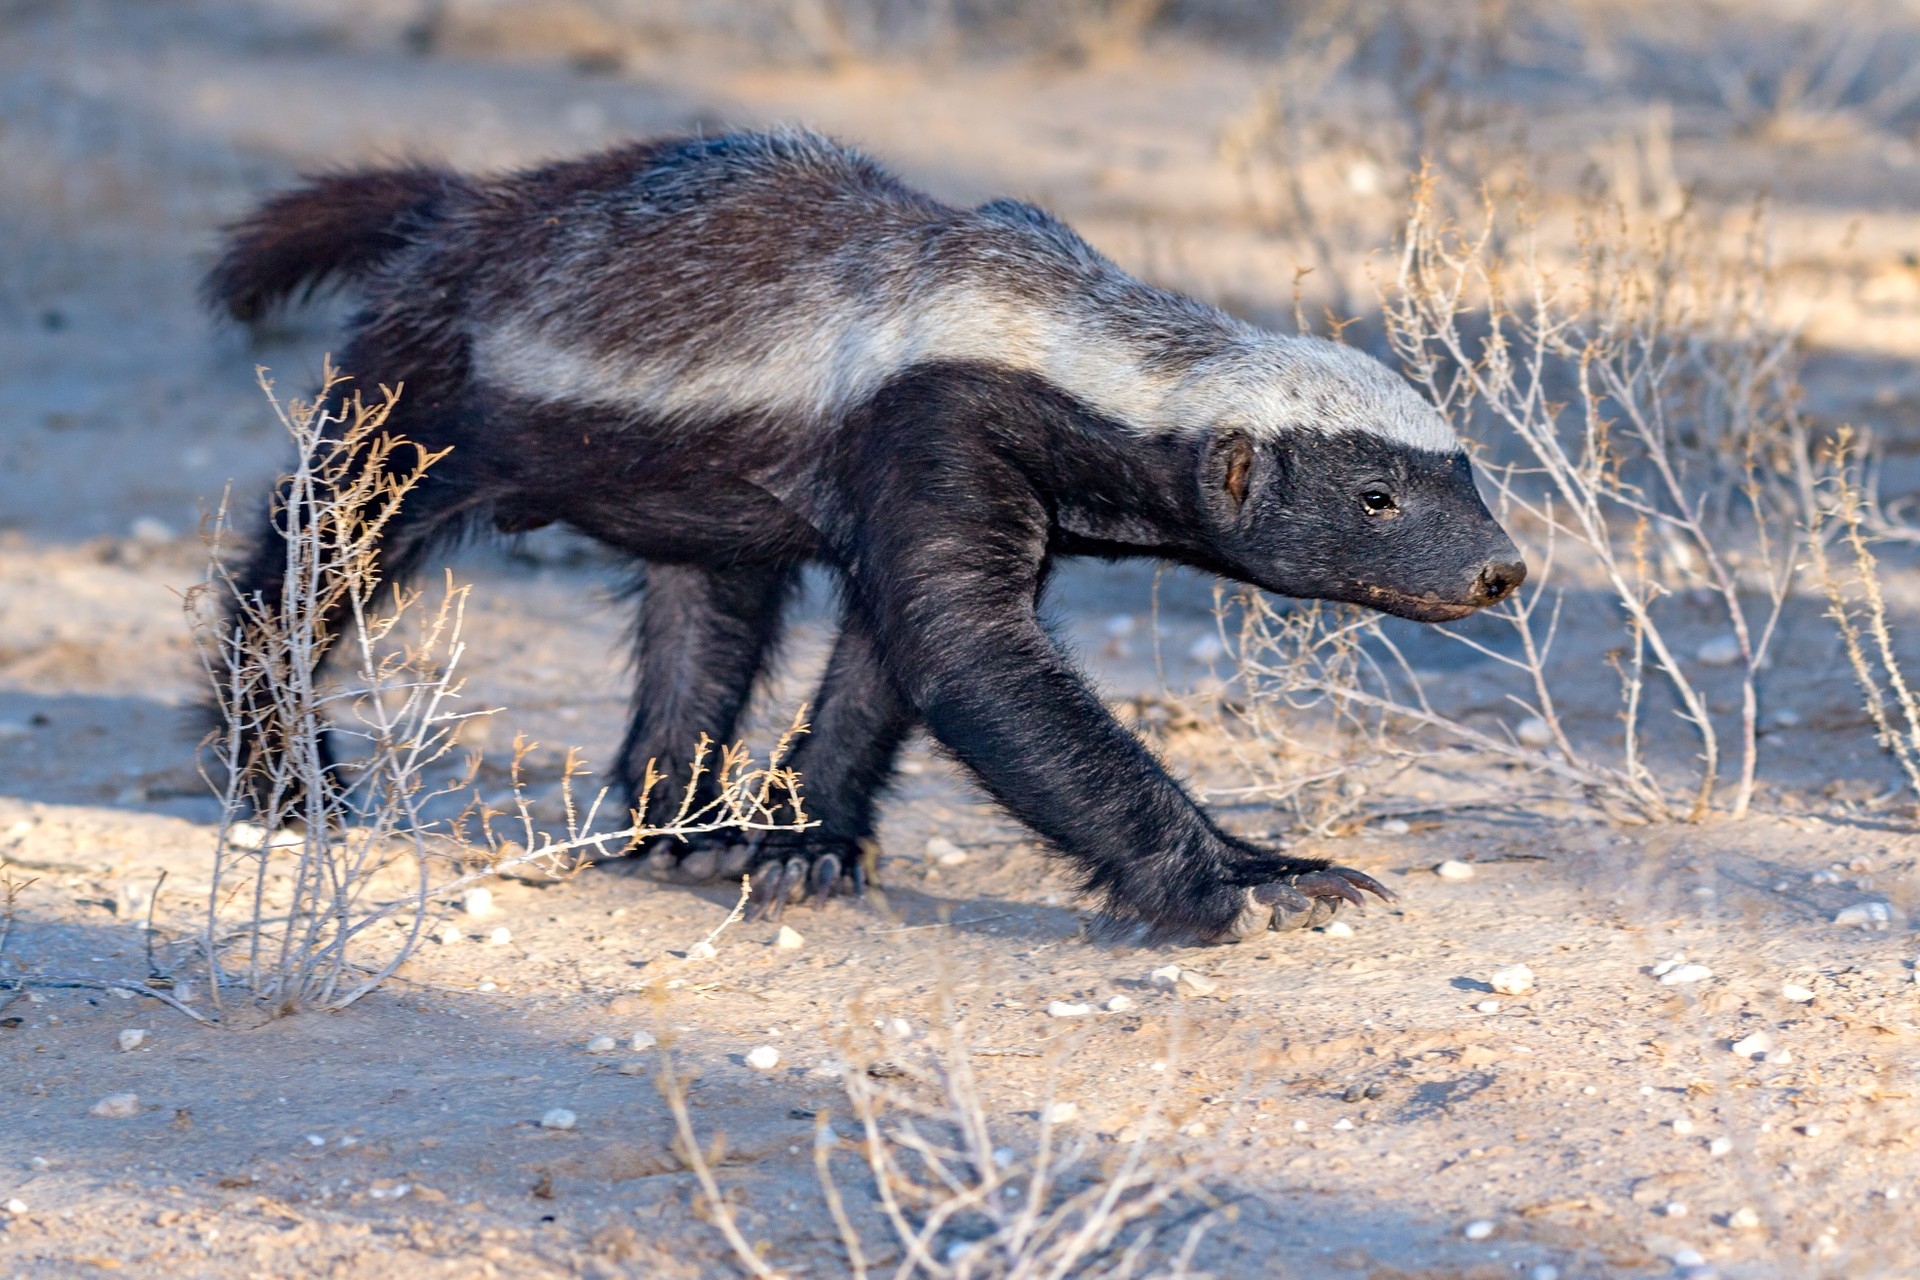 A honey badger on the hunt in Africa